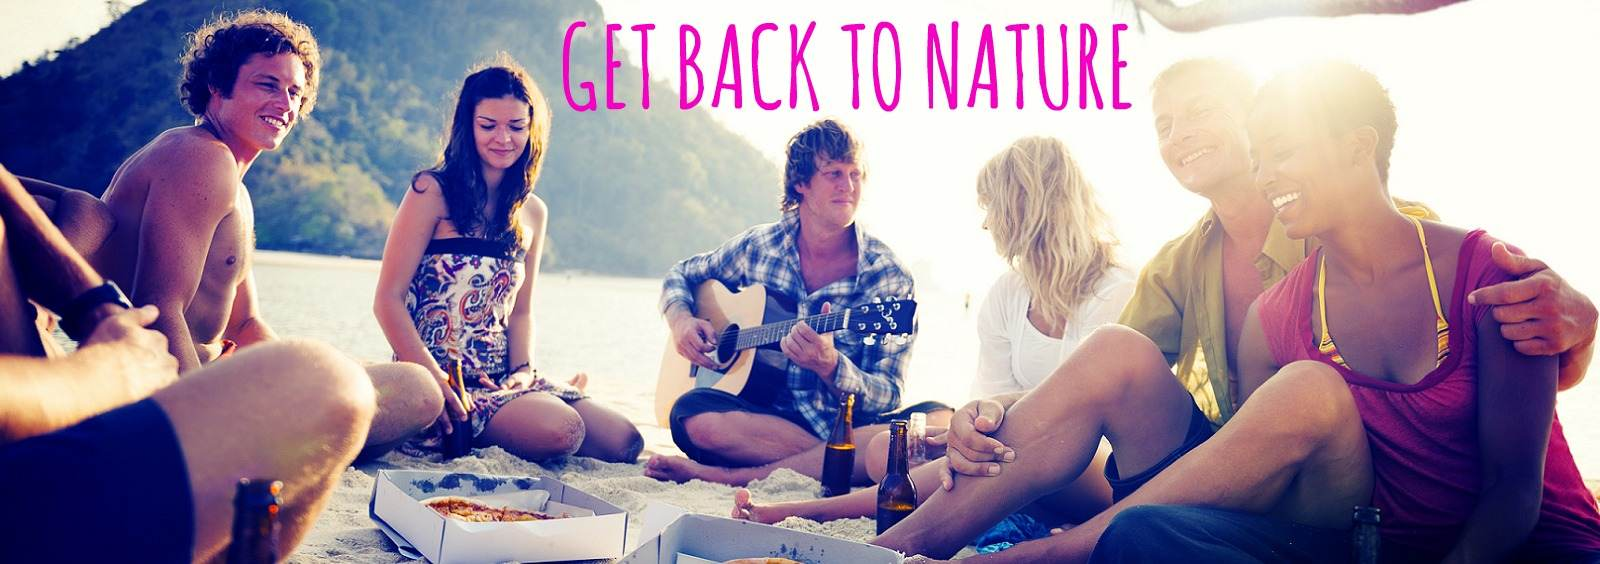 Celebrate with natural products.